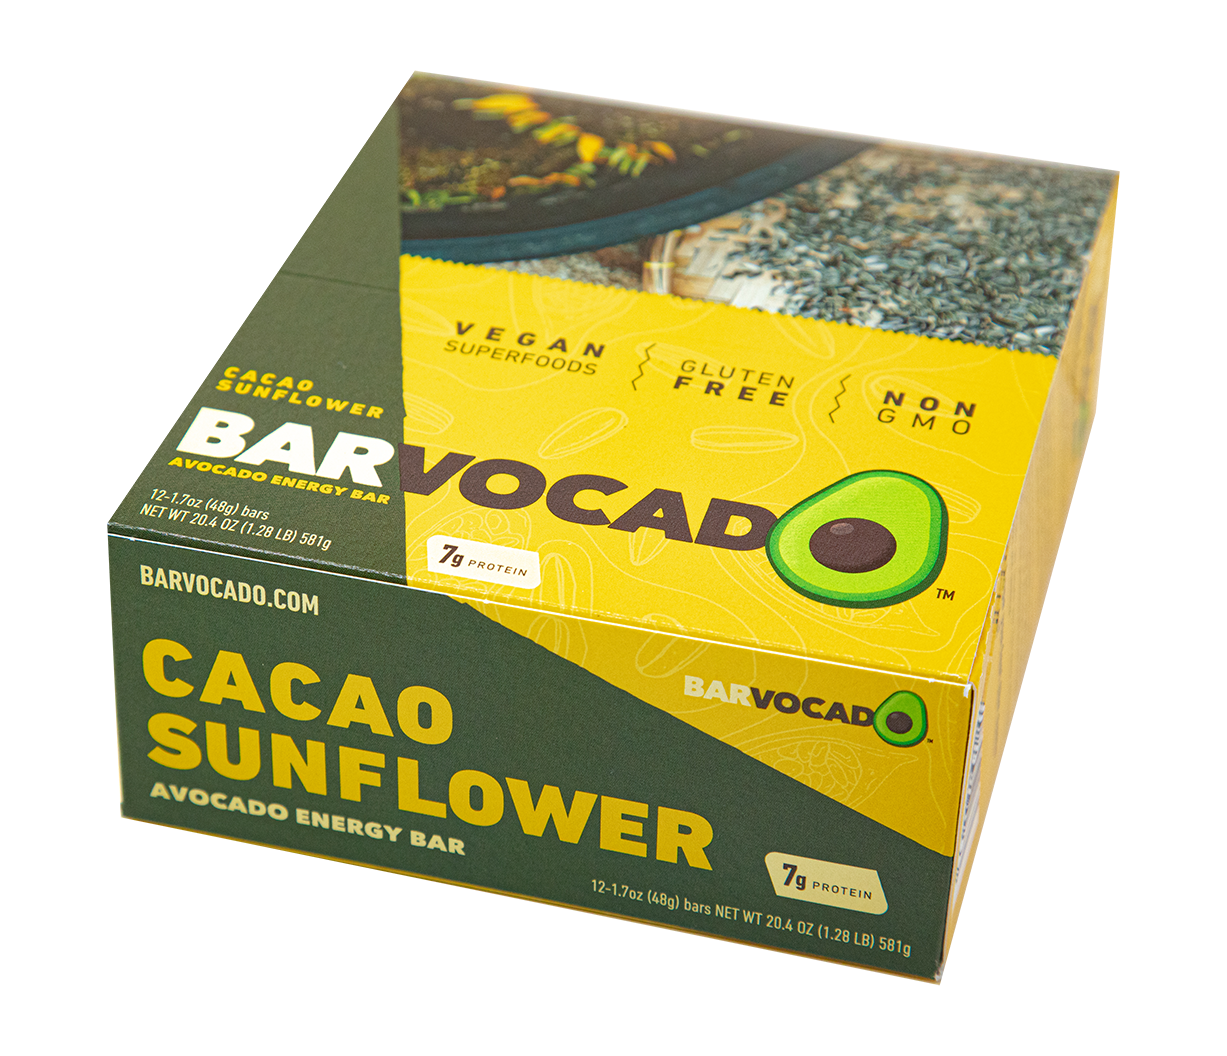 Cacao Sunflower: 12 Bar Box